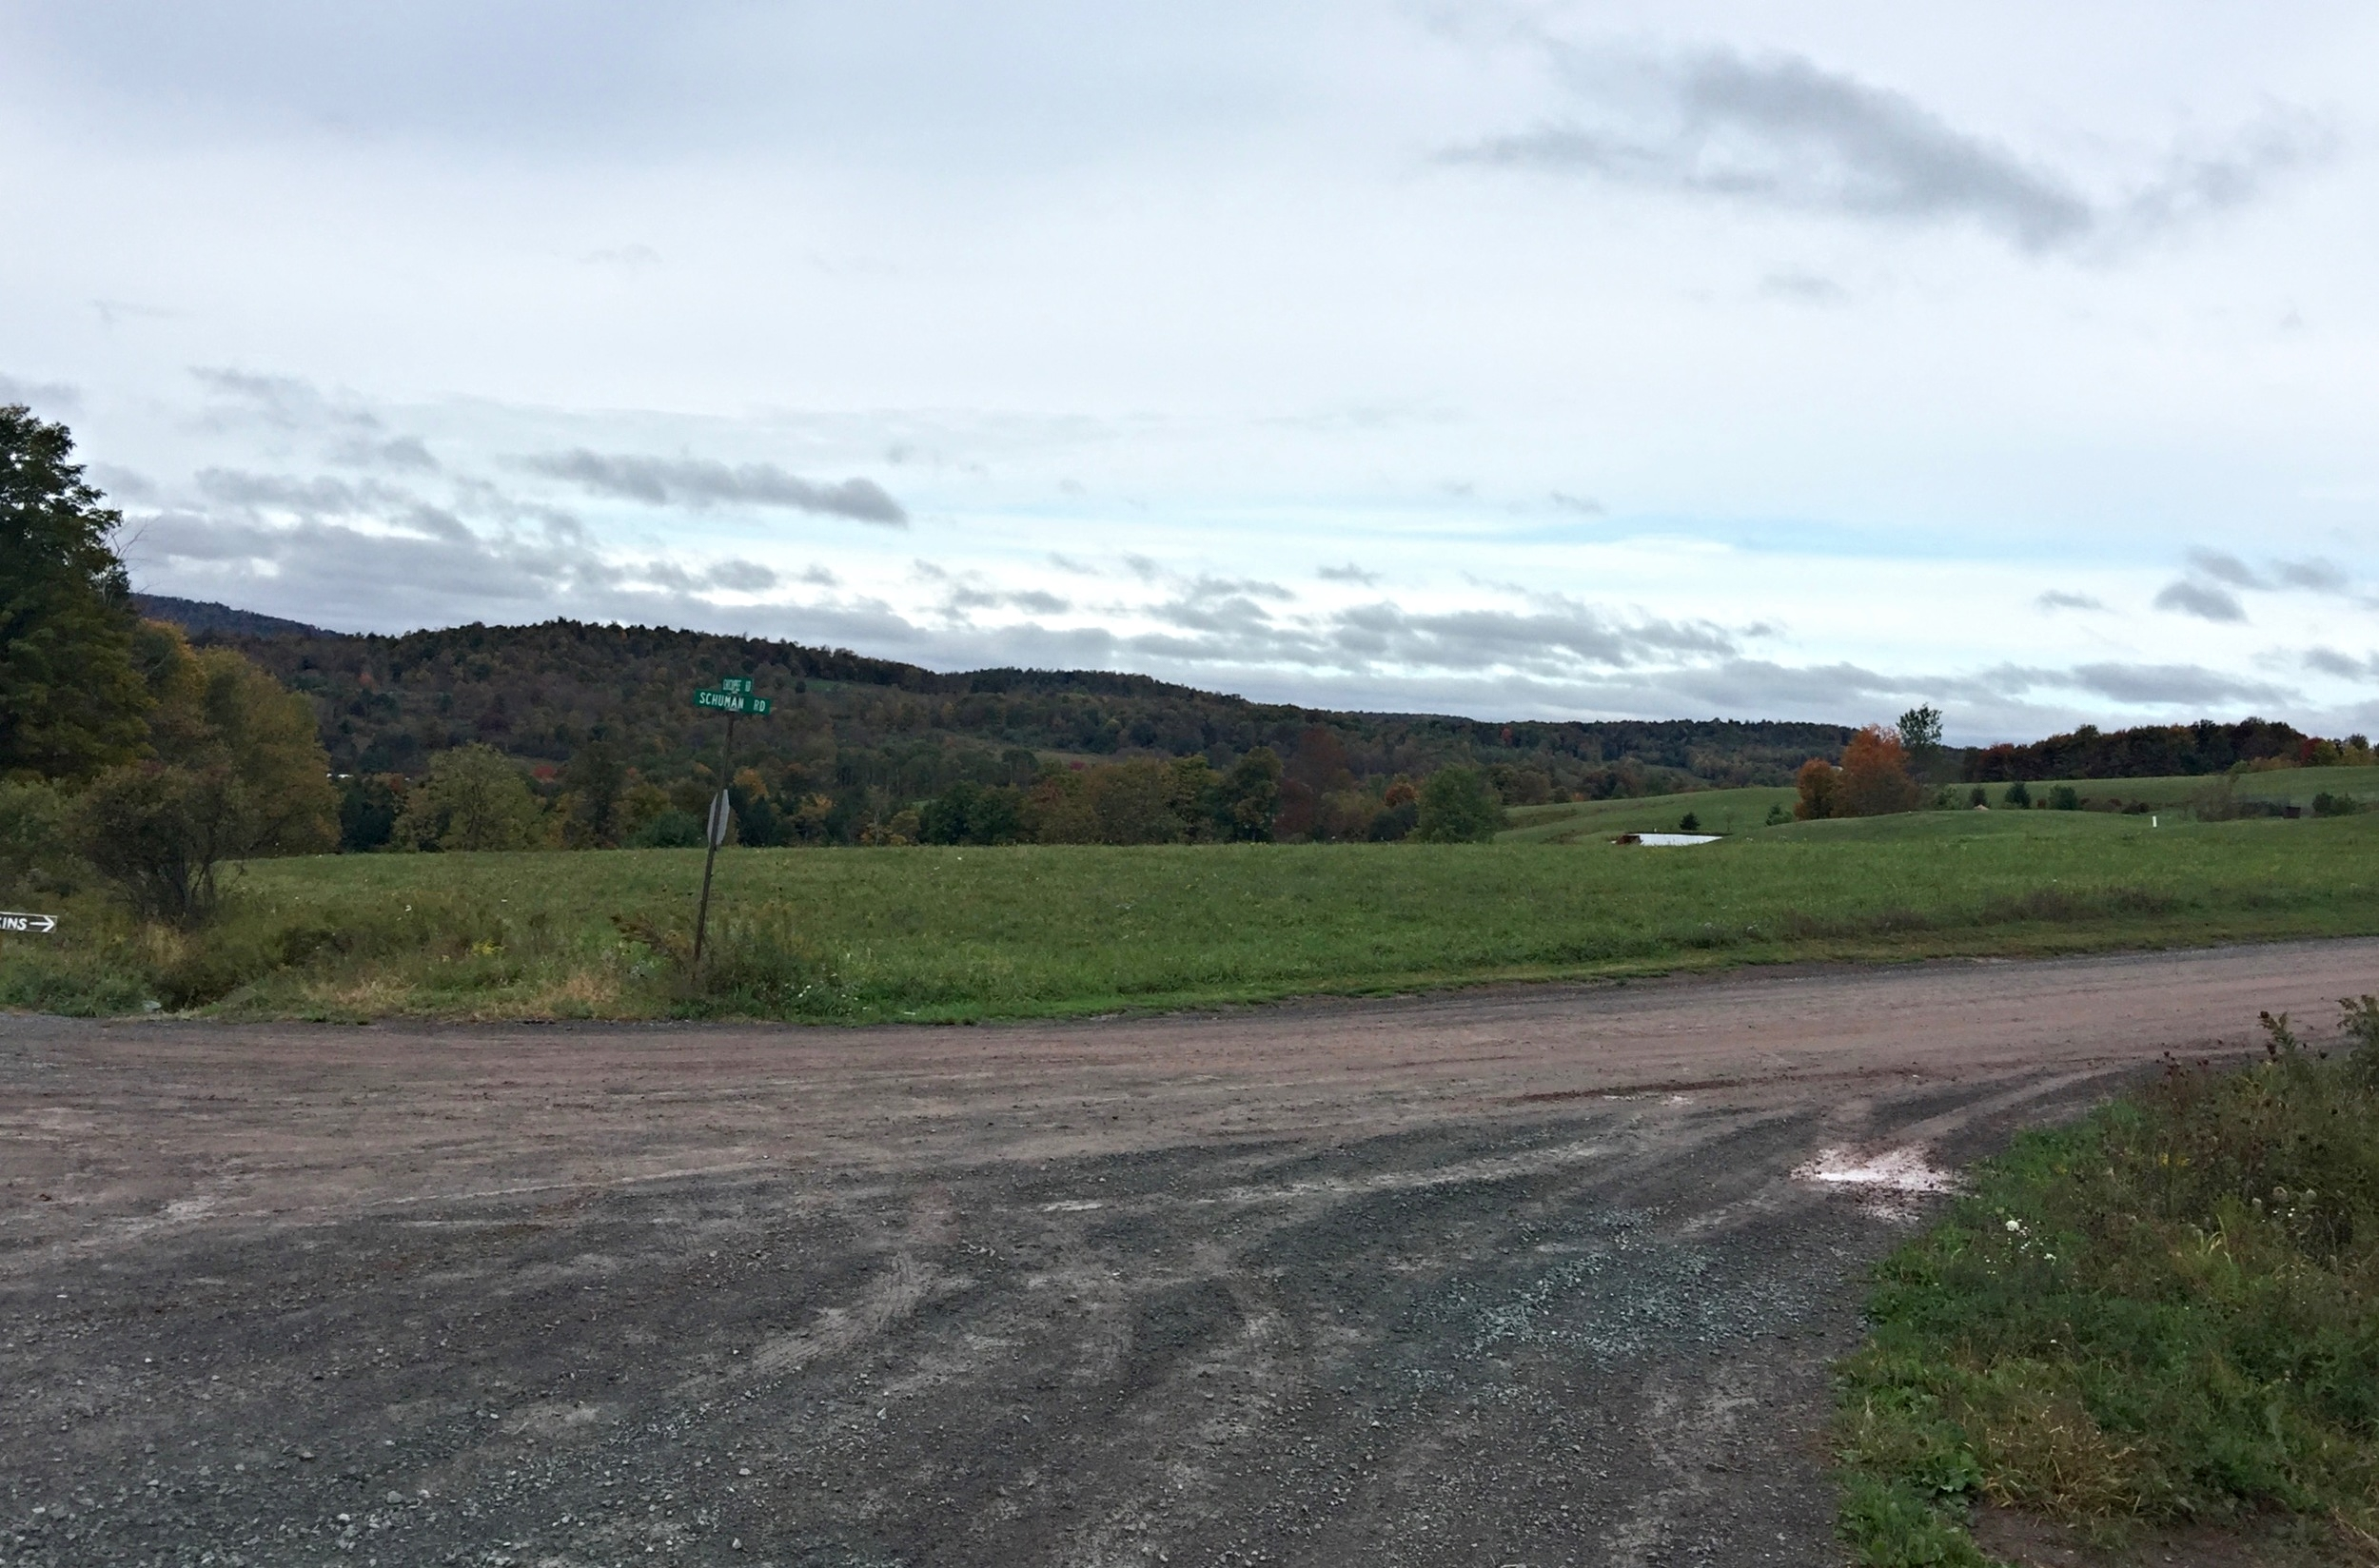 One of many gravel roads in north eastern PA.